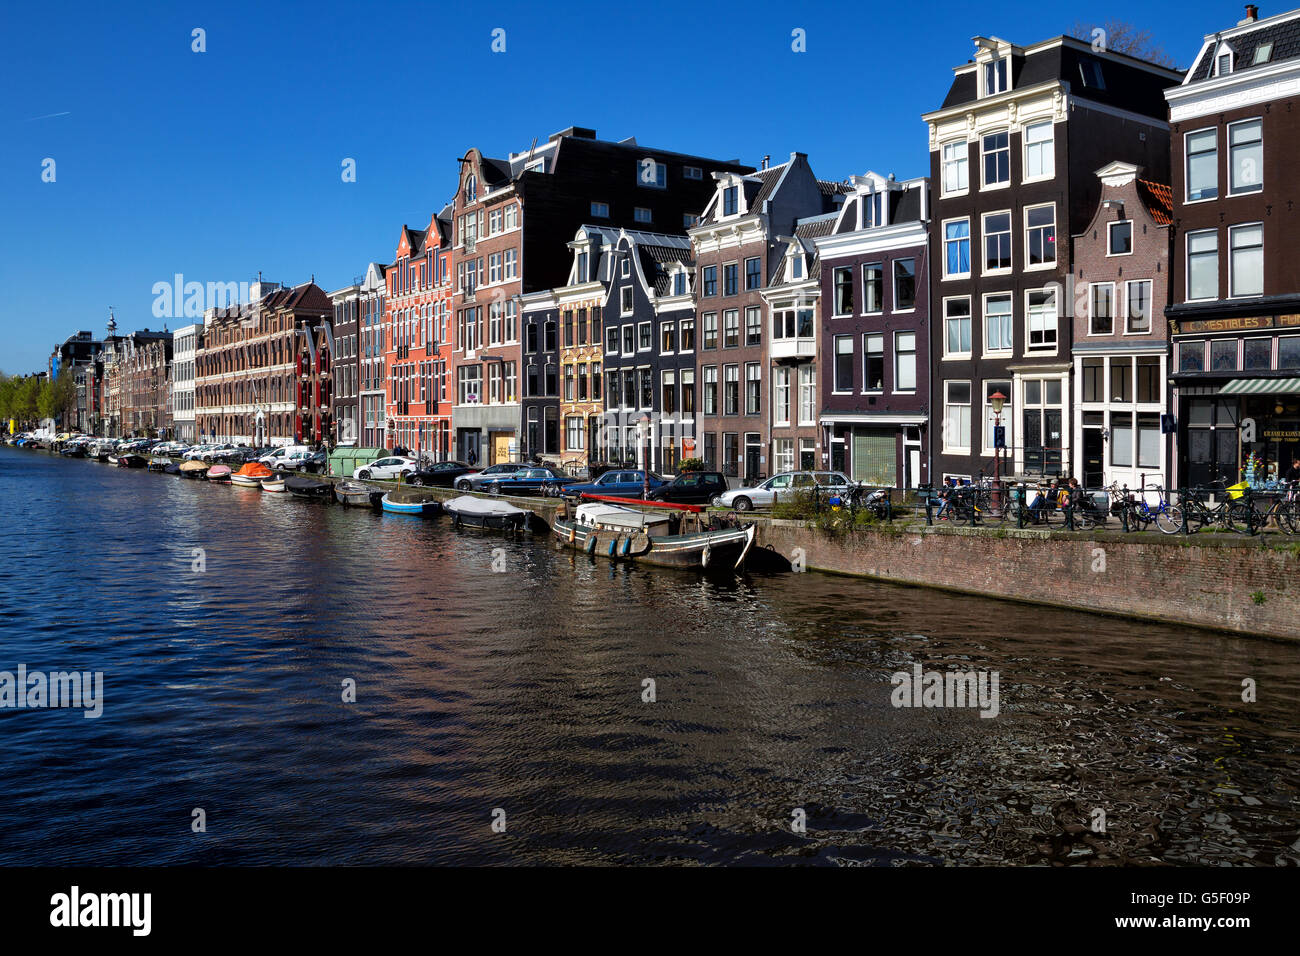 Prinsengracht in downtown Amsterdam, Netherlands in spring. - Stock Image